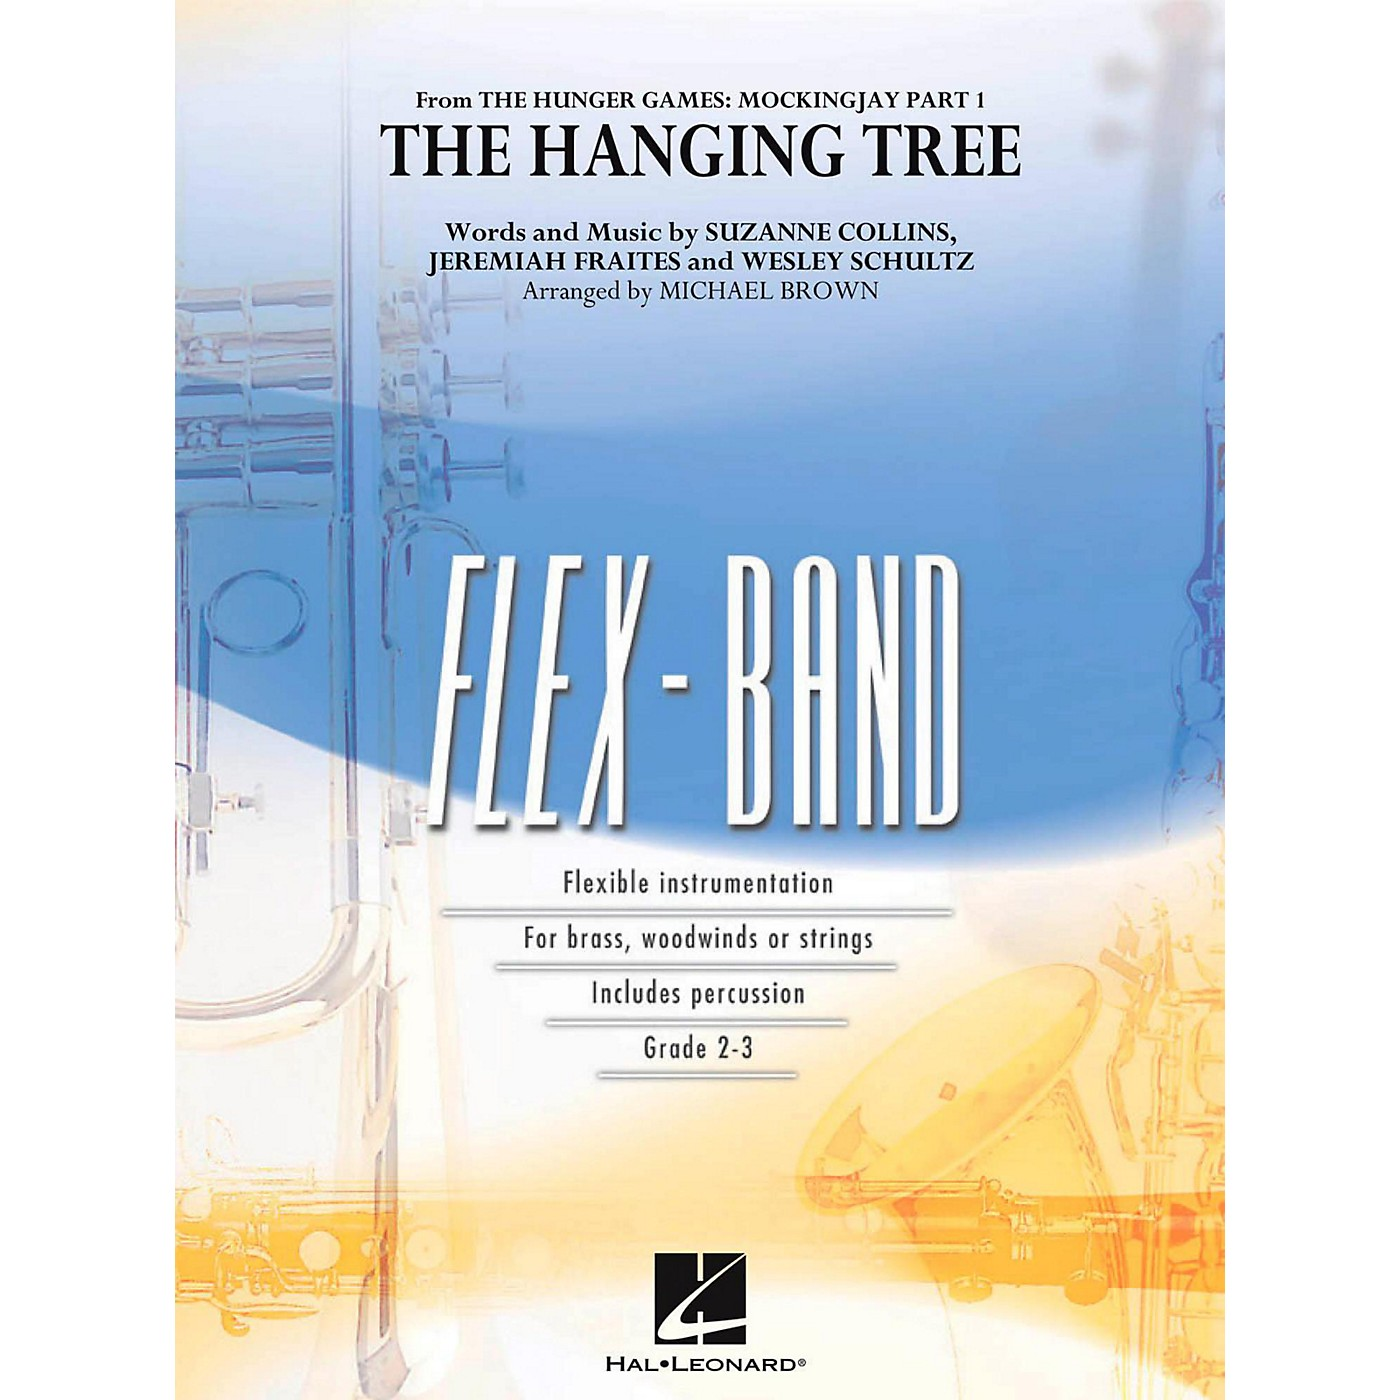 Hal Leonard The Hanging Tree (From The Hunger Games: Mockingjay Part 1) Concert Band Flex-Band Series thumbnail